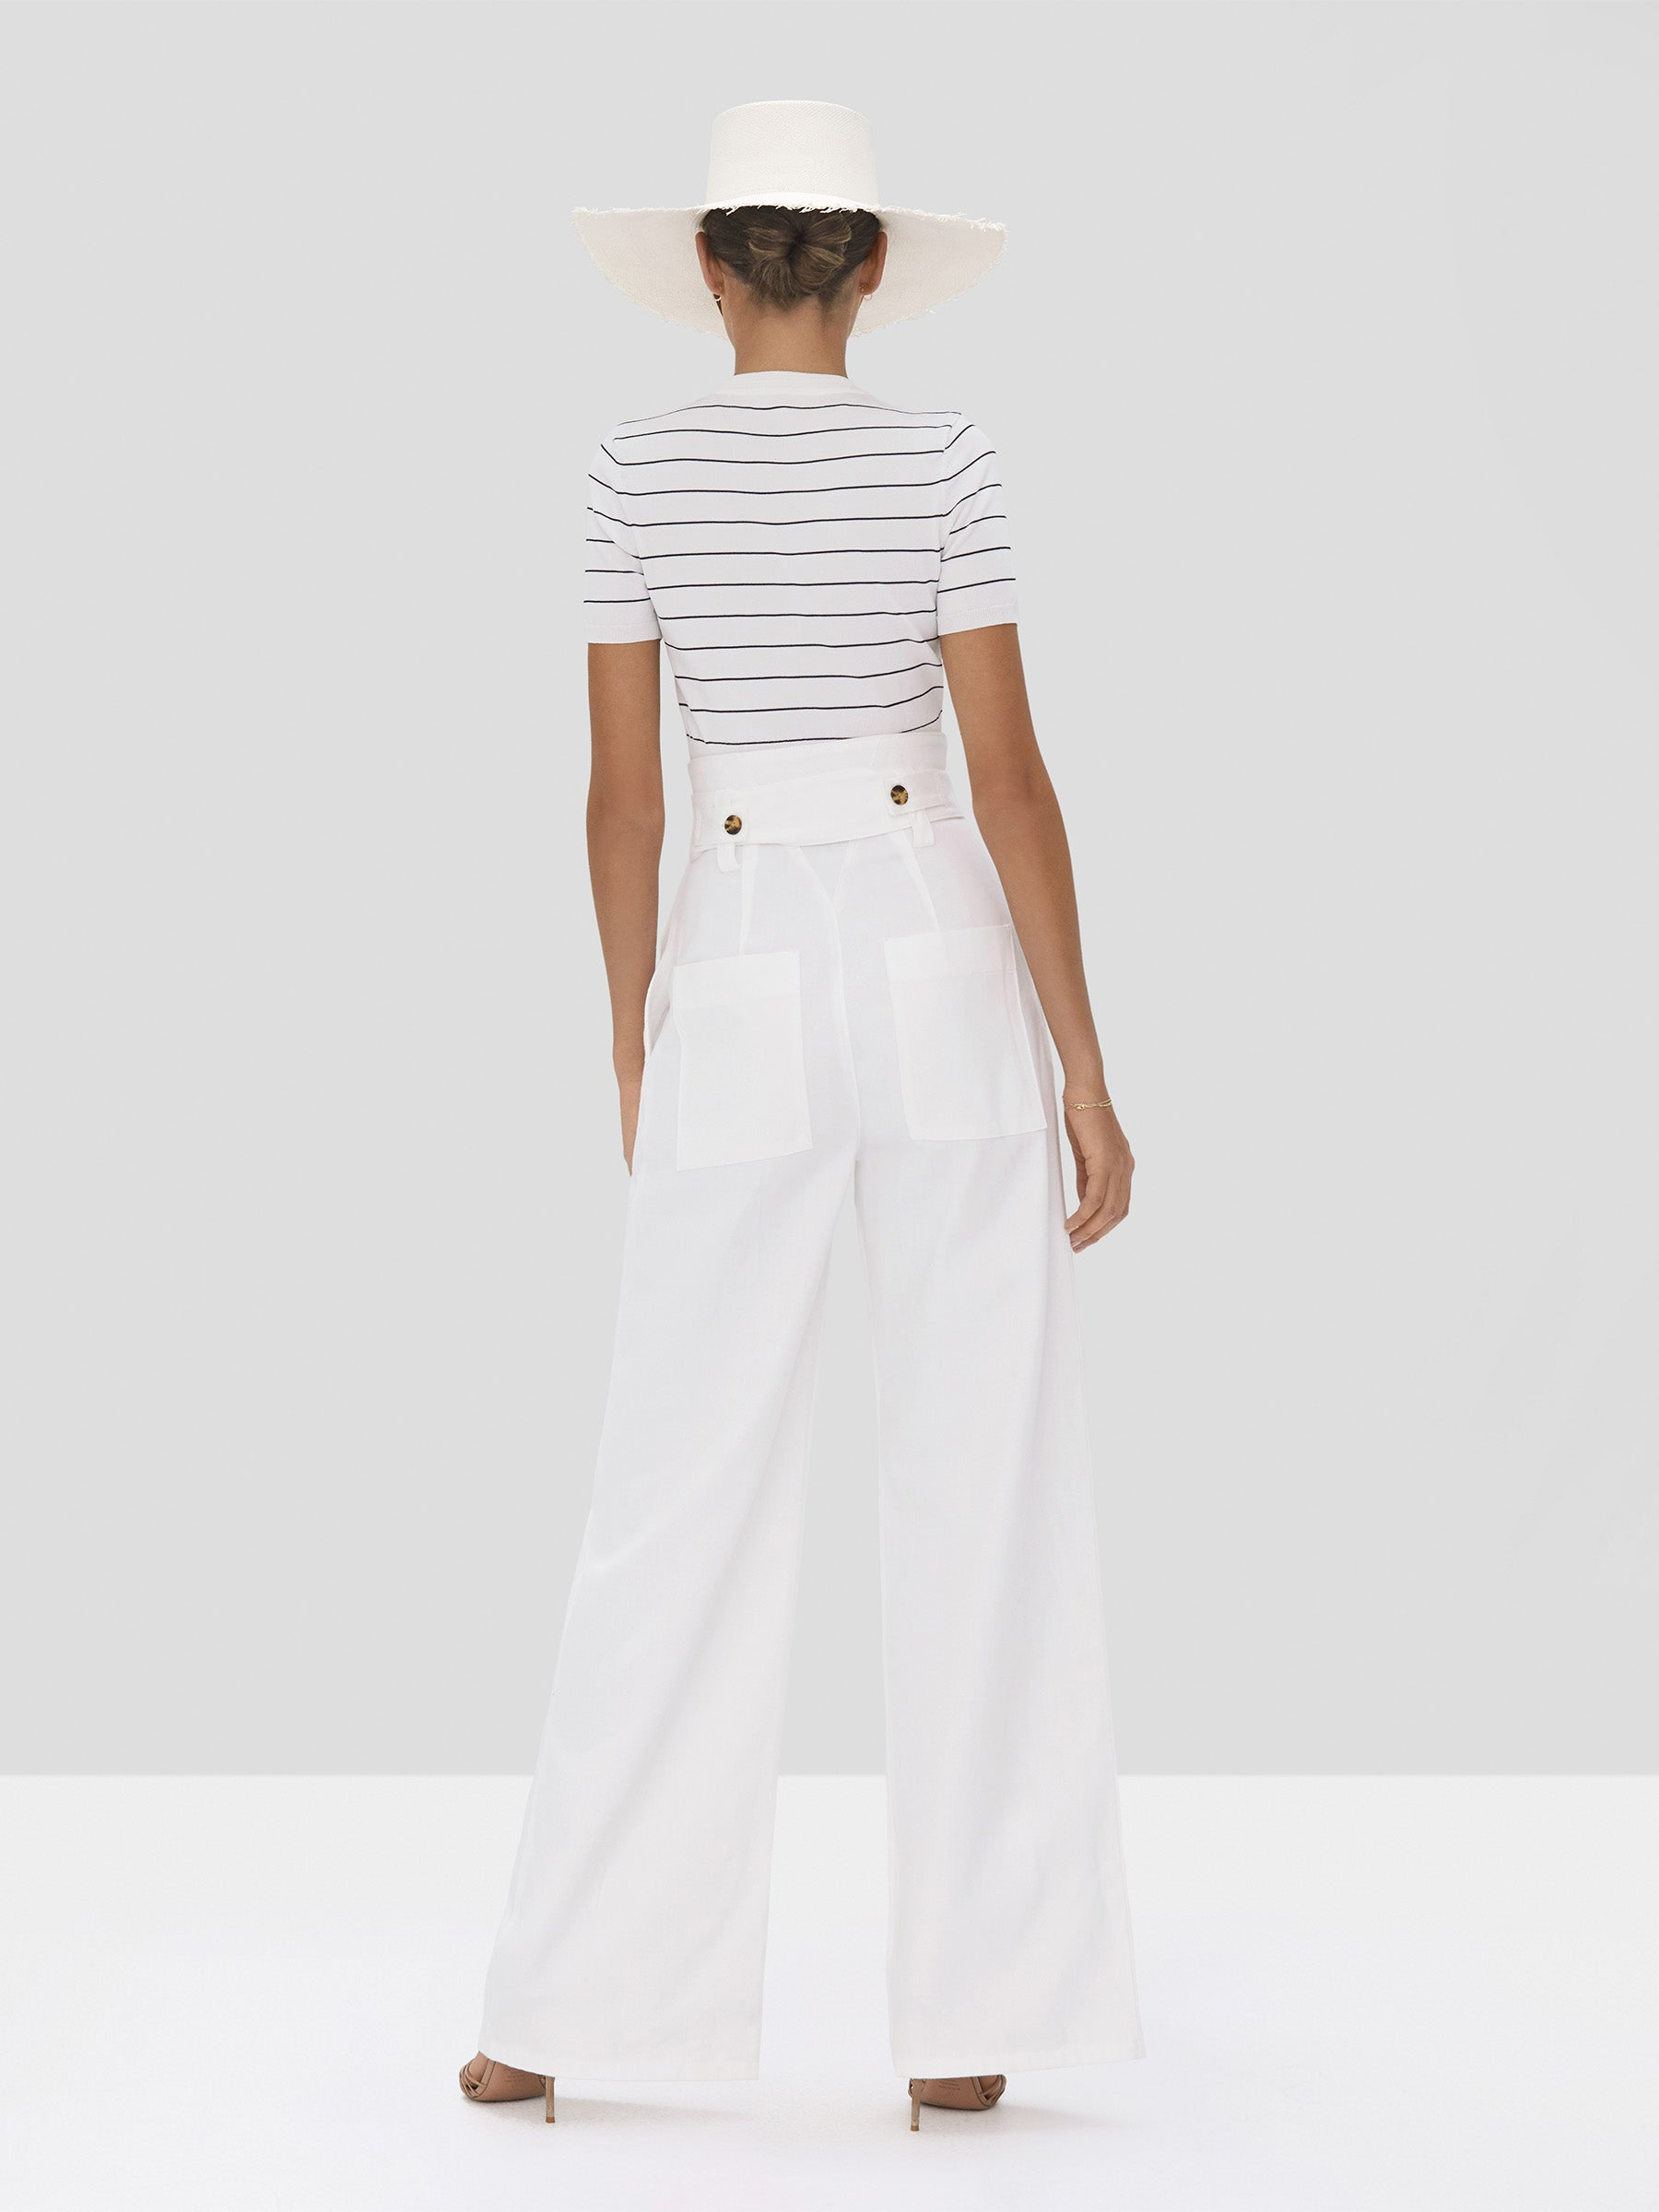 The Carlie Crop Top in White/Navy Stripes from the Spring Summer 2020 - Rear View